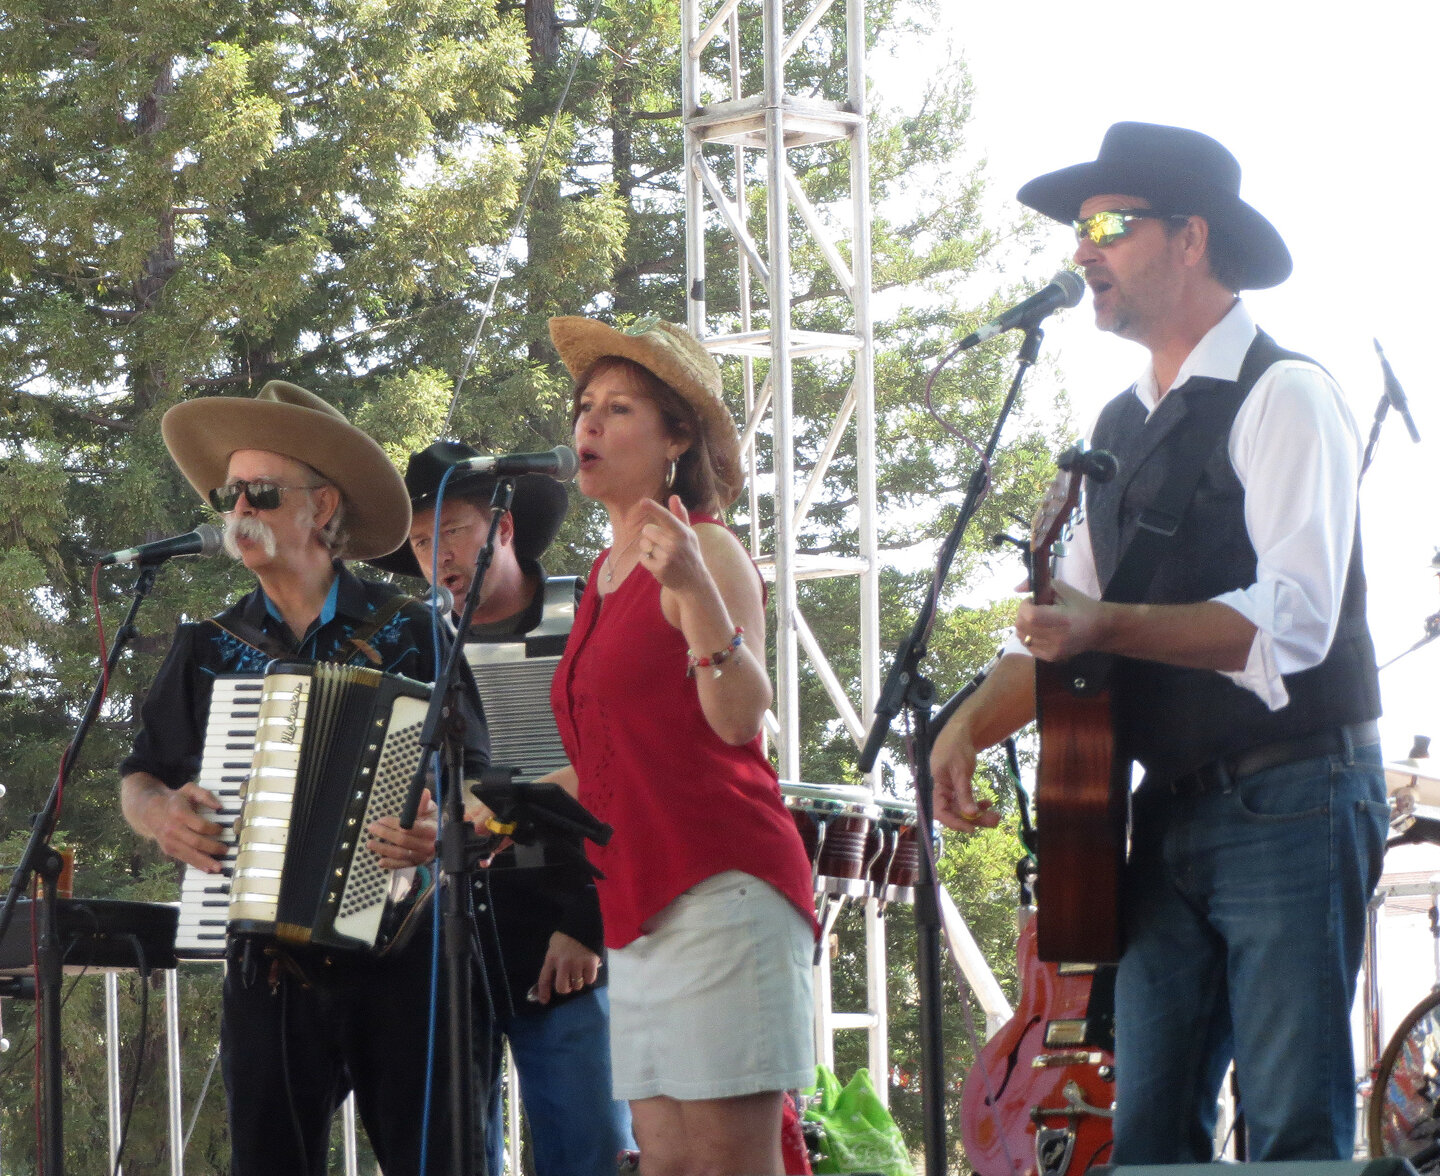 Sandy Geller at the Novato Art Wine & Music Festival (her 2nd gig as a Mule). With her L to R: Dick Bay, Brian Dettor, Geoff Mack